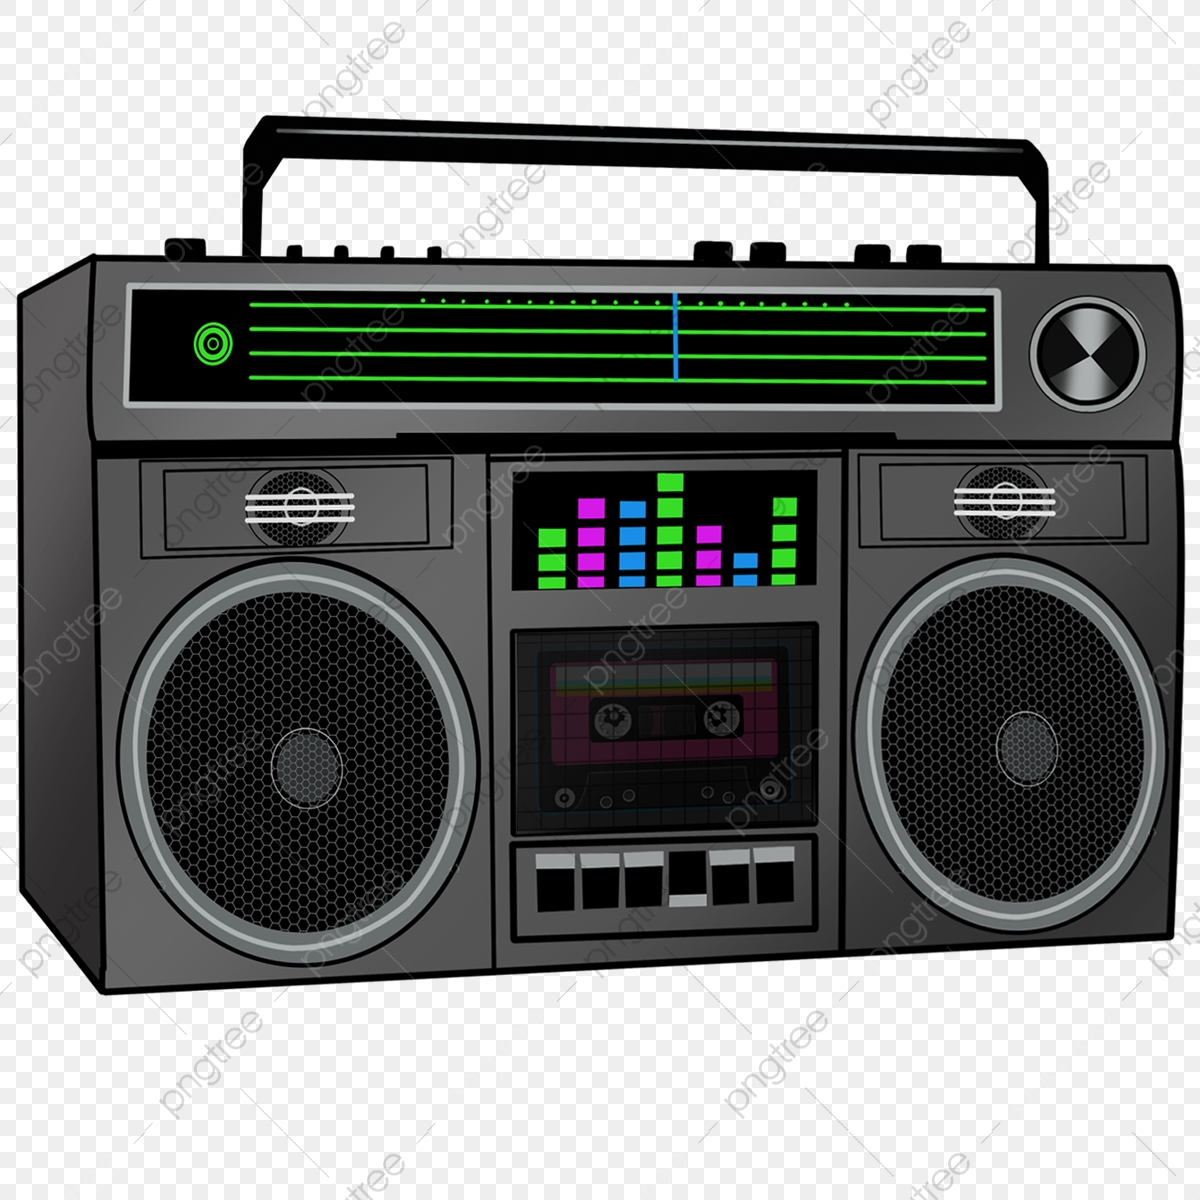 Logo Blown Up Boombox - Boombox , Free Transparent Clipart - ClipartKey